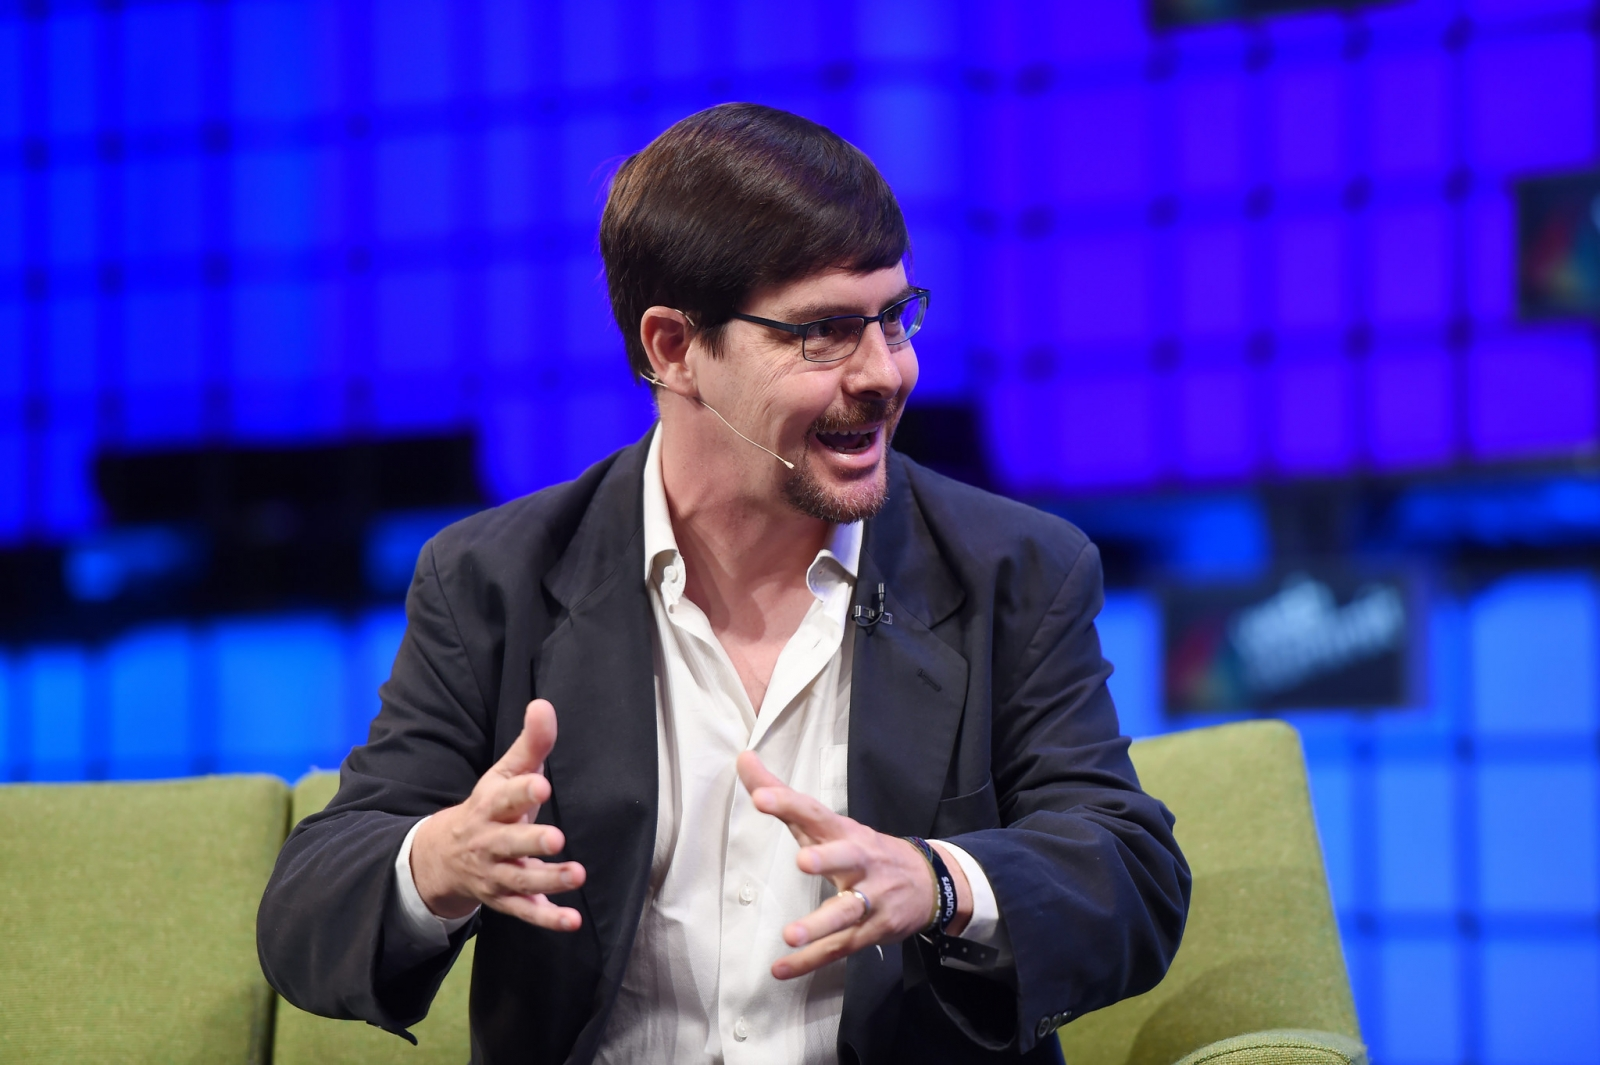 Gavin Andresen Bitcoin Foundation Marijuana Industry